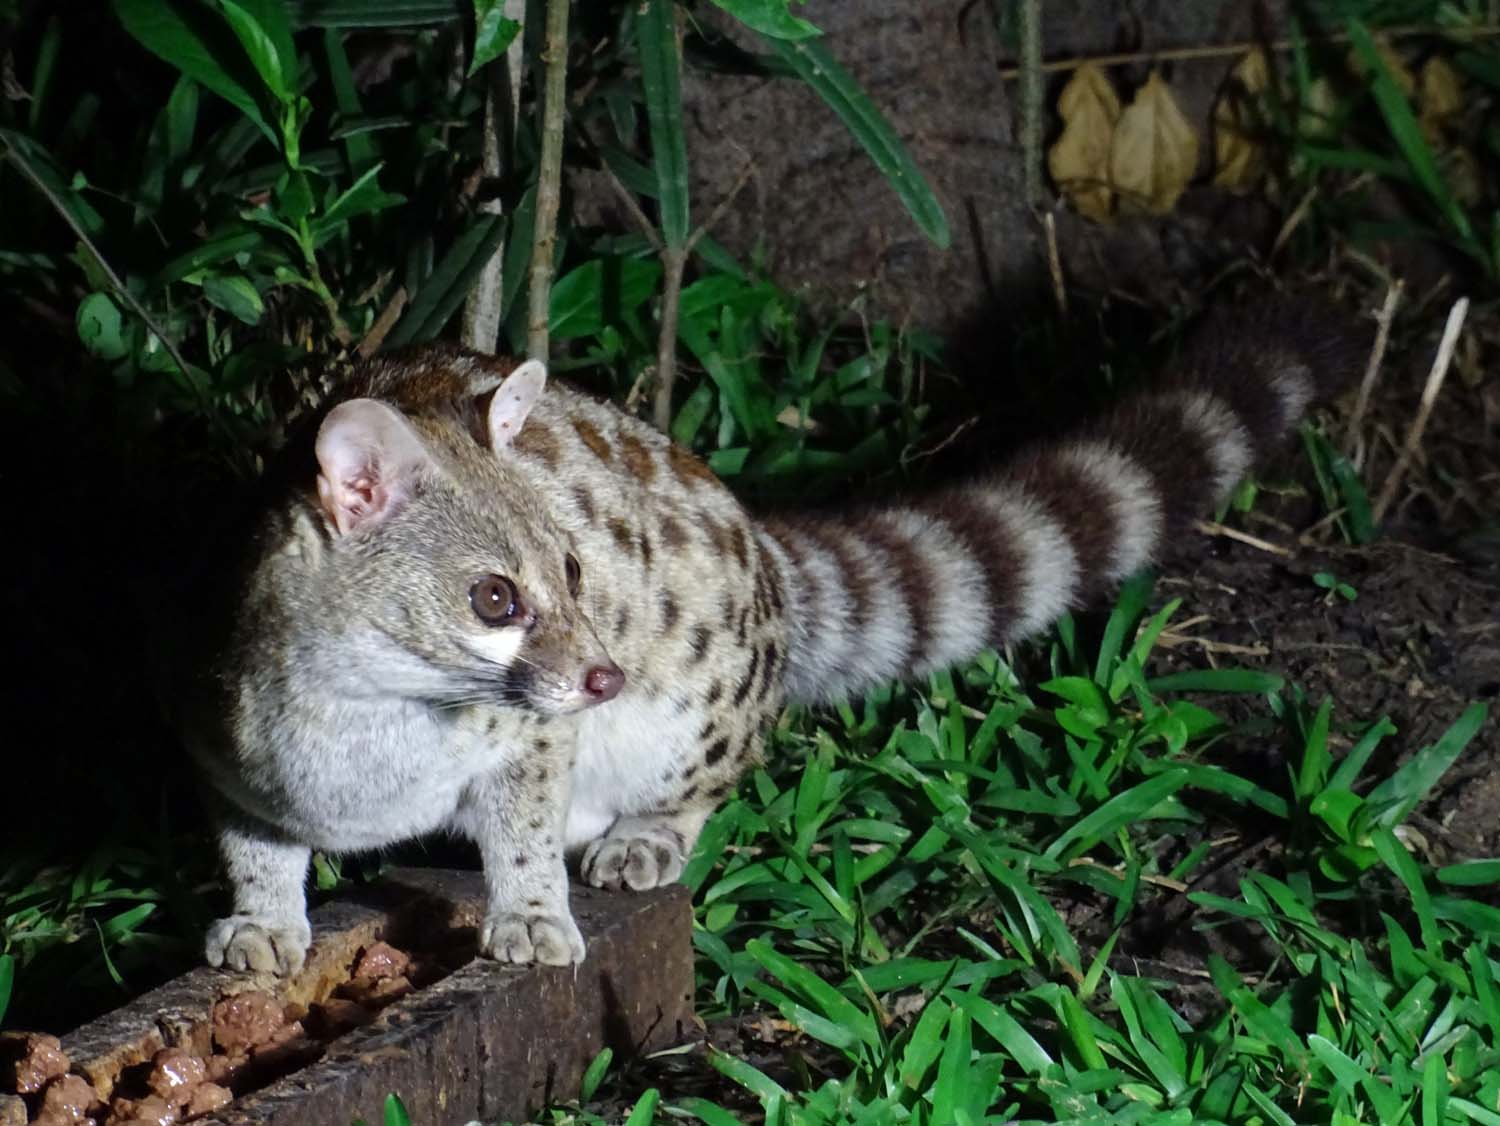 a genet comes for a visit (and eat some of the Whiskas put out for him)